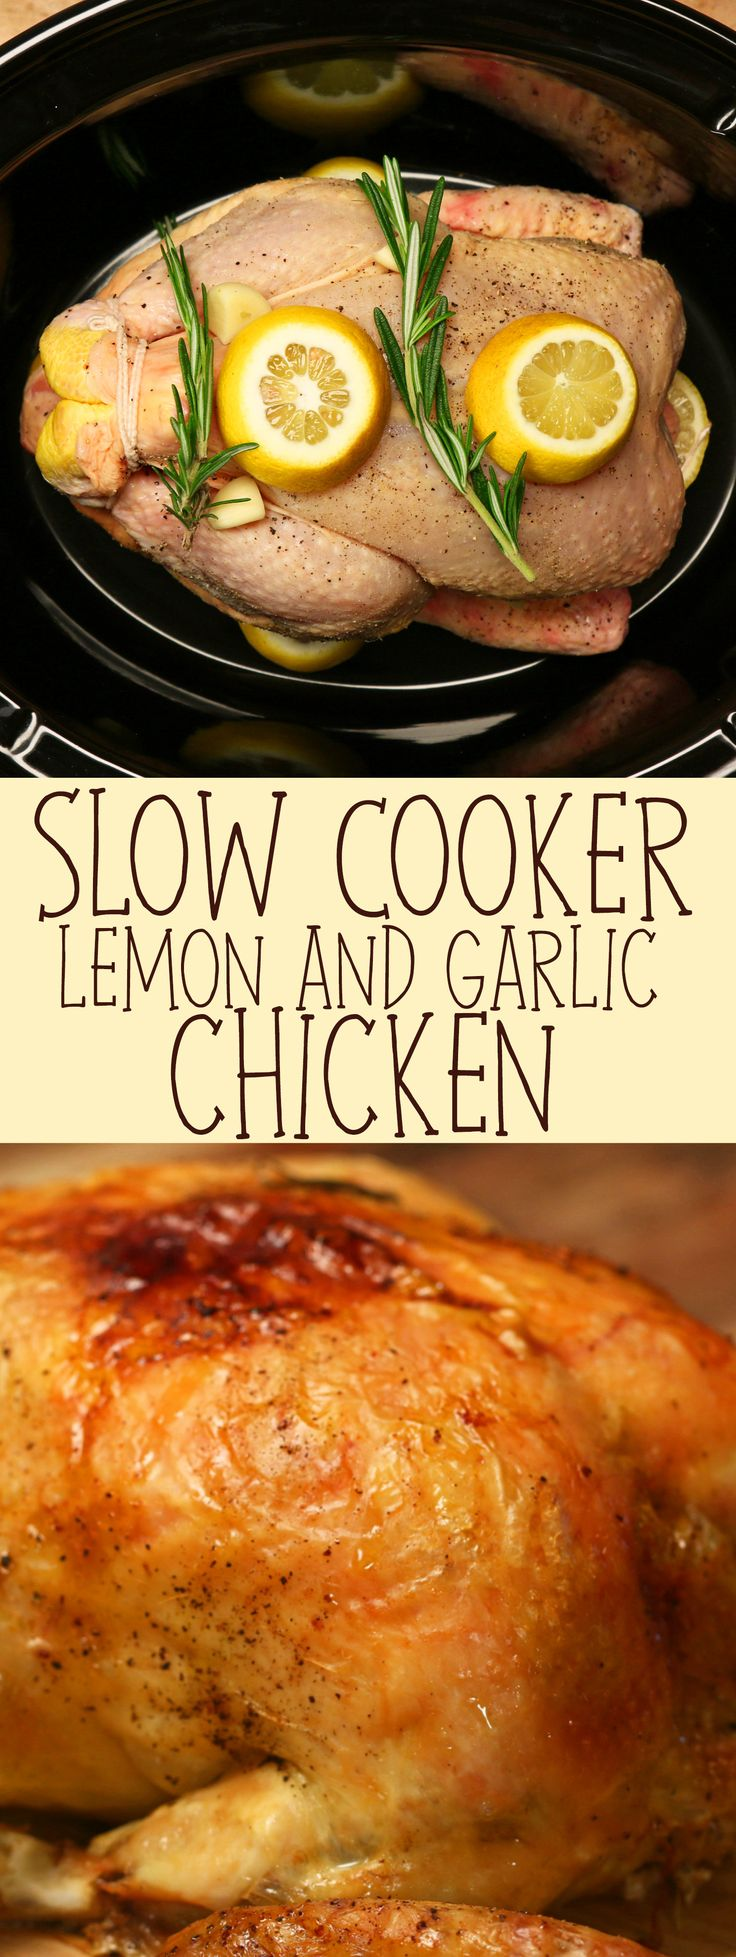 Slow Cooker Lemon And Garlic Chicken                                                                                                                                                      More